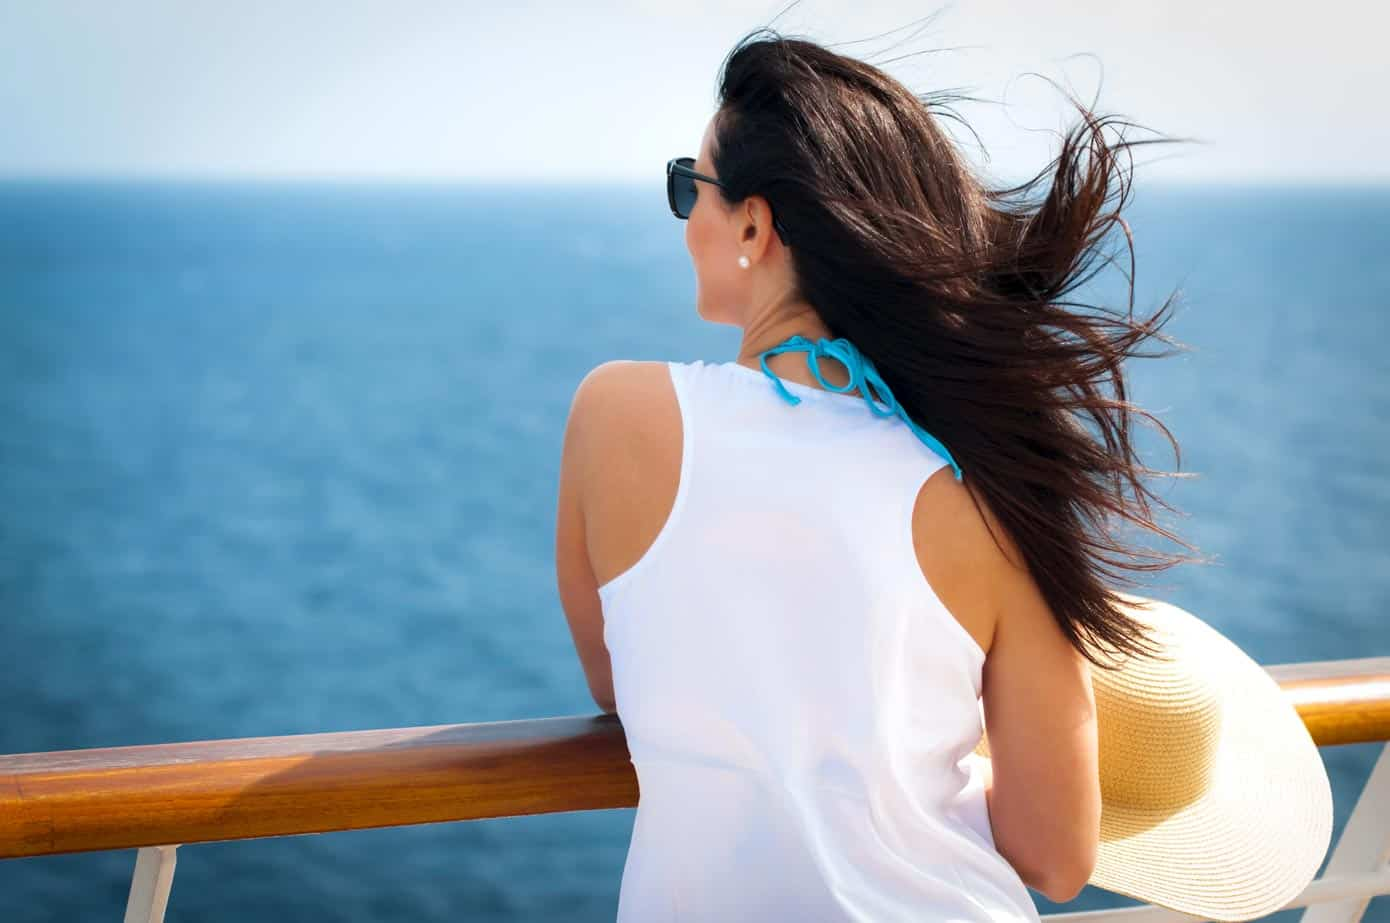 A woman standing on the cruise ship deck balcony with an ocean view and wind in her hair.